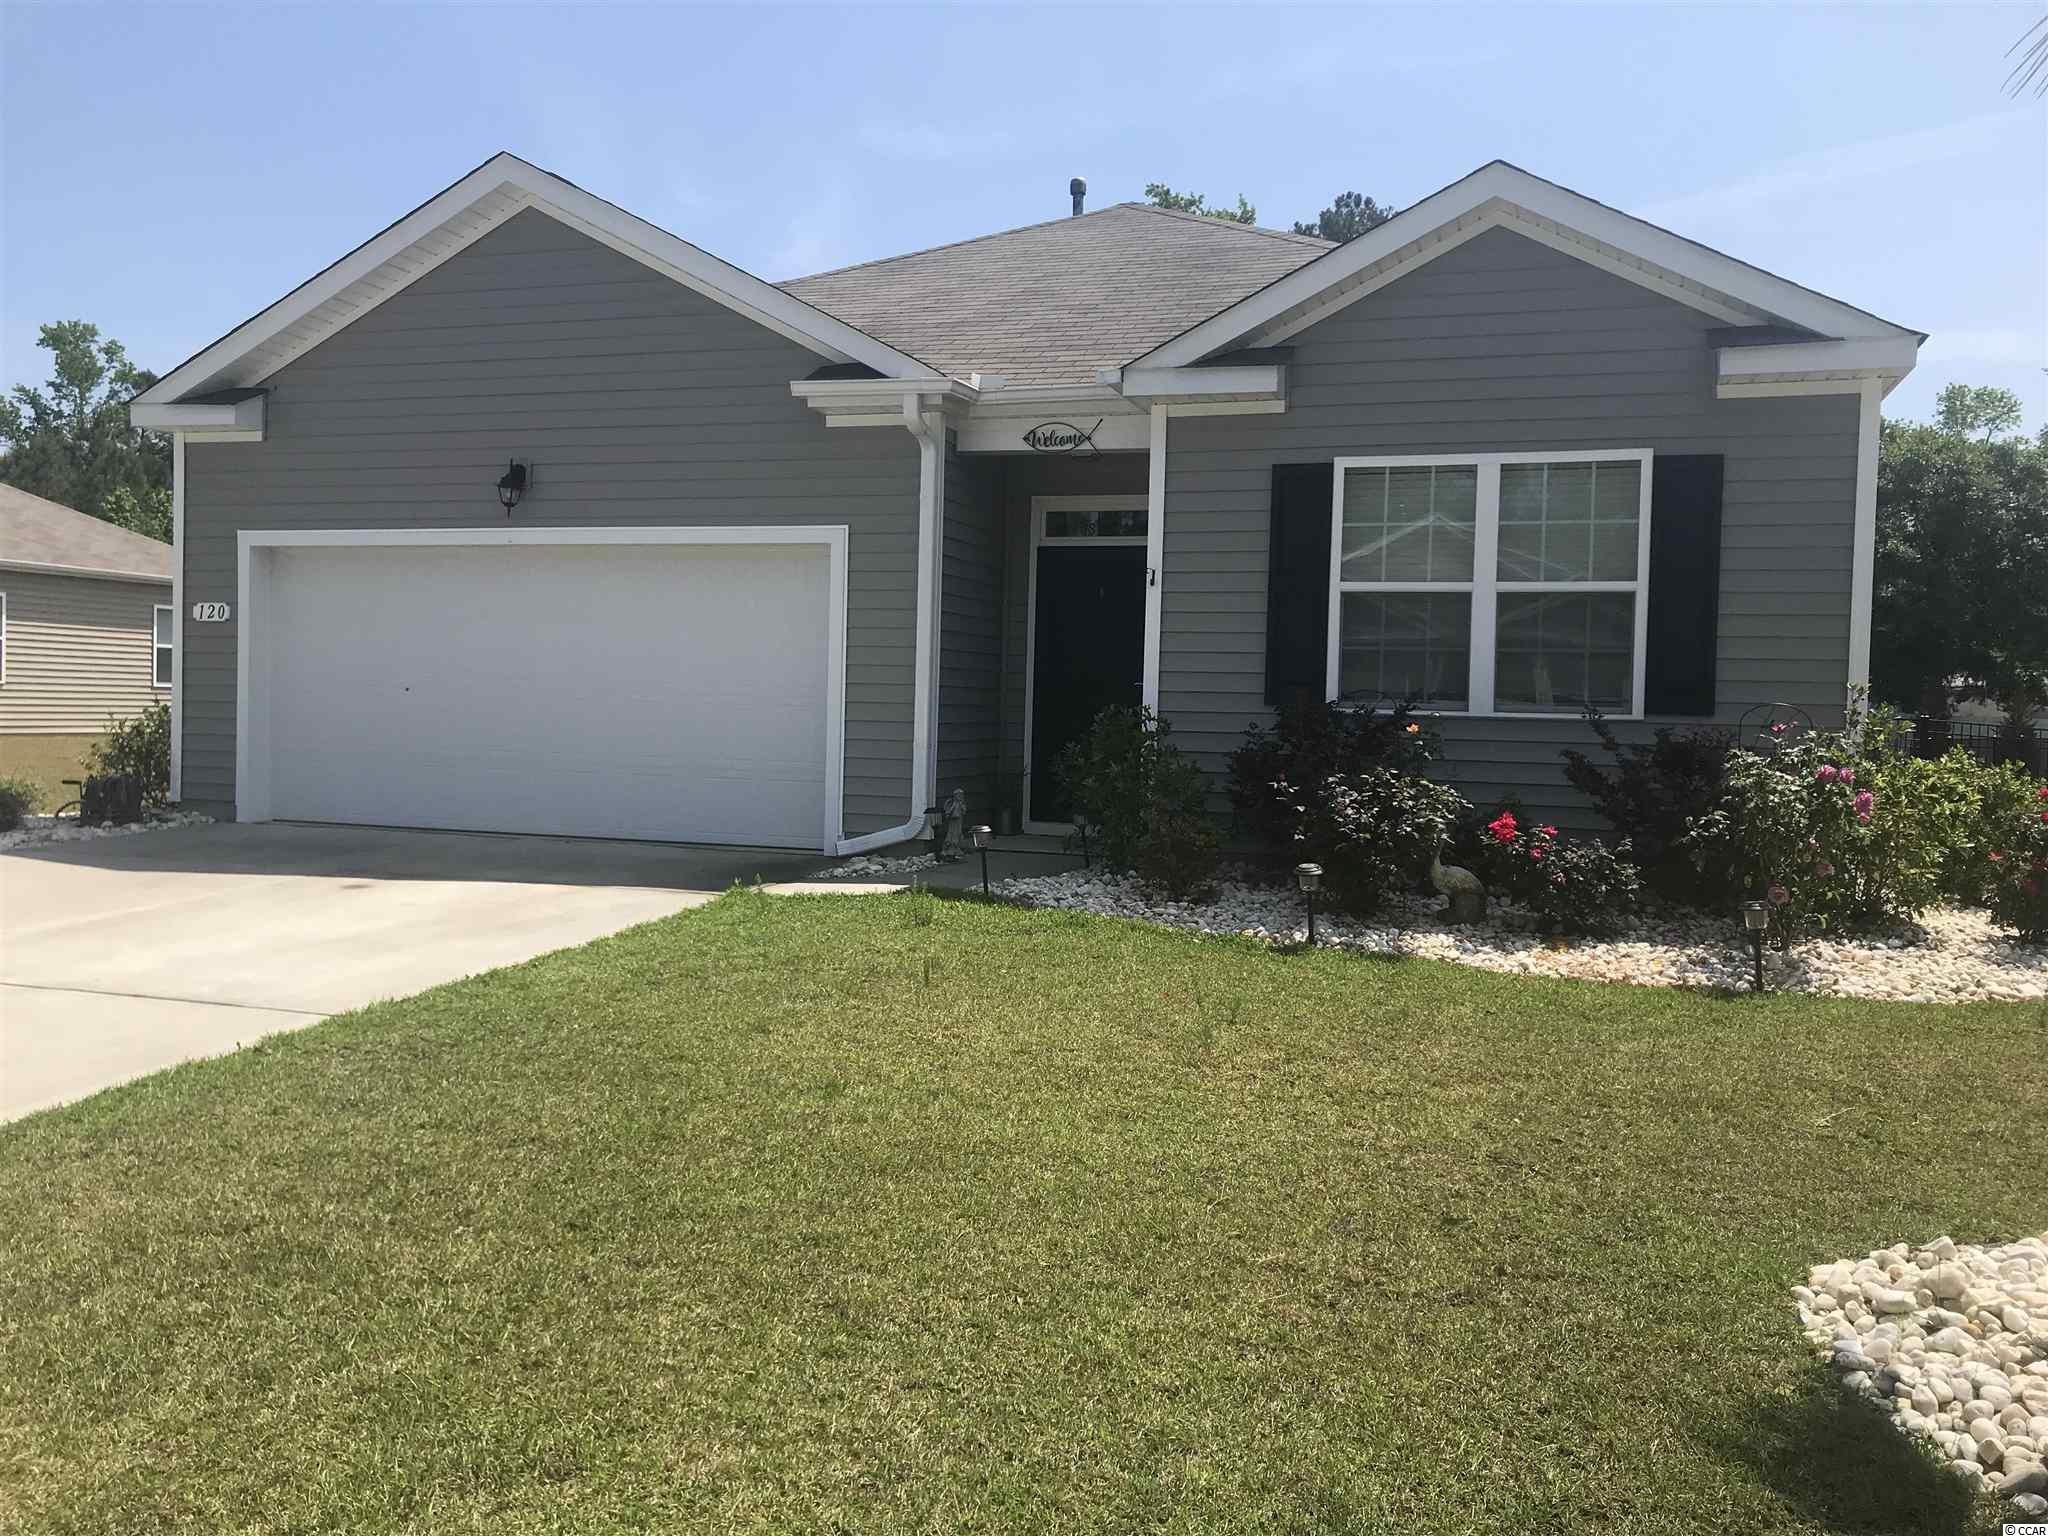 Your cooking with gas in this natural gas community!  Move in ready 4 bedroom/2 bath home in mint condition.  Located just off hwy 90 and close to International Drive makes your commute to Myrtle Beach or hwy 501 convenient.  This 3 year old home features a fenced backyard with a lovely view of the pond.  Screened in back porch leads to an expanded patio area great for barbecues or family gatherings.  Master bath offers a walk in shower and large walk in closet.  Open floor plan is another added plus. Owner added in a full house Aquasana Water system.  Schedule your showing today!